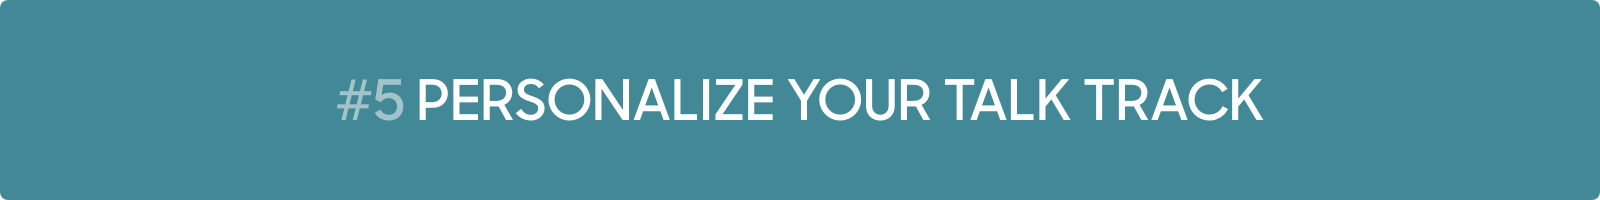 Conversational Marketing Tip #5: Personalize your talk track